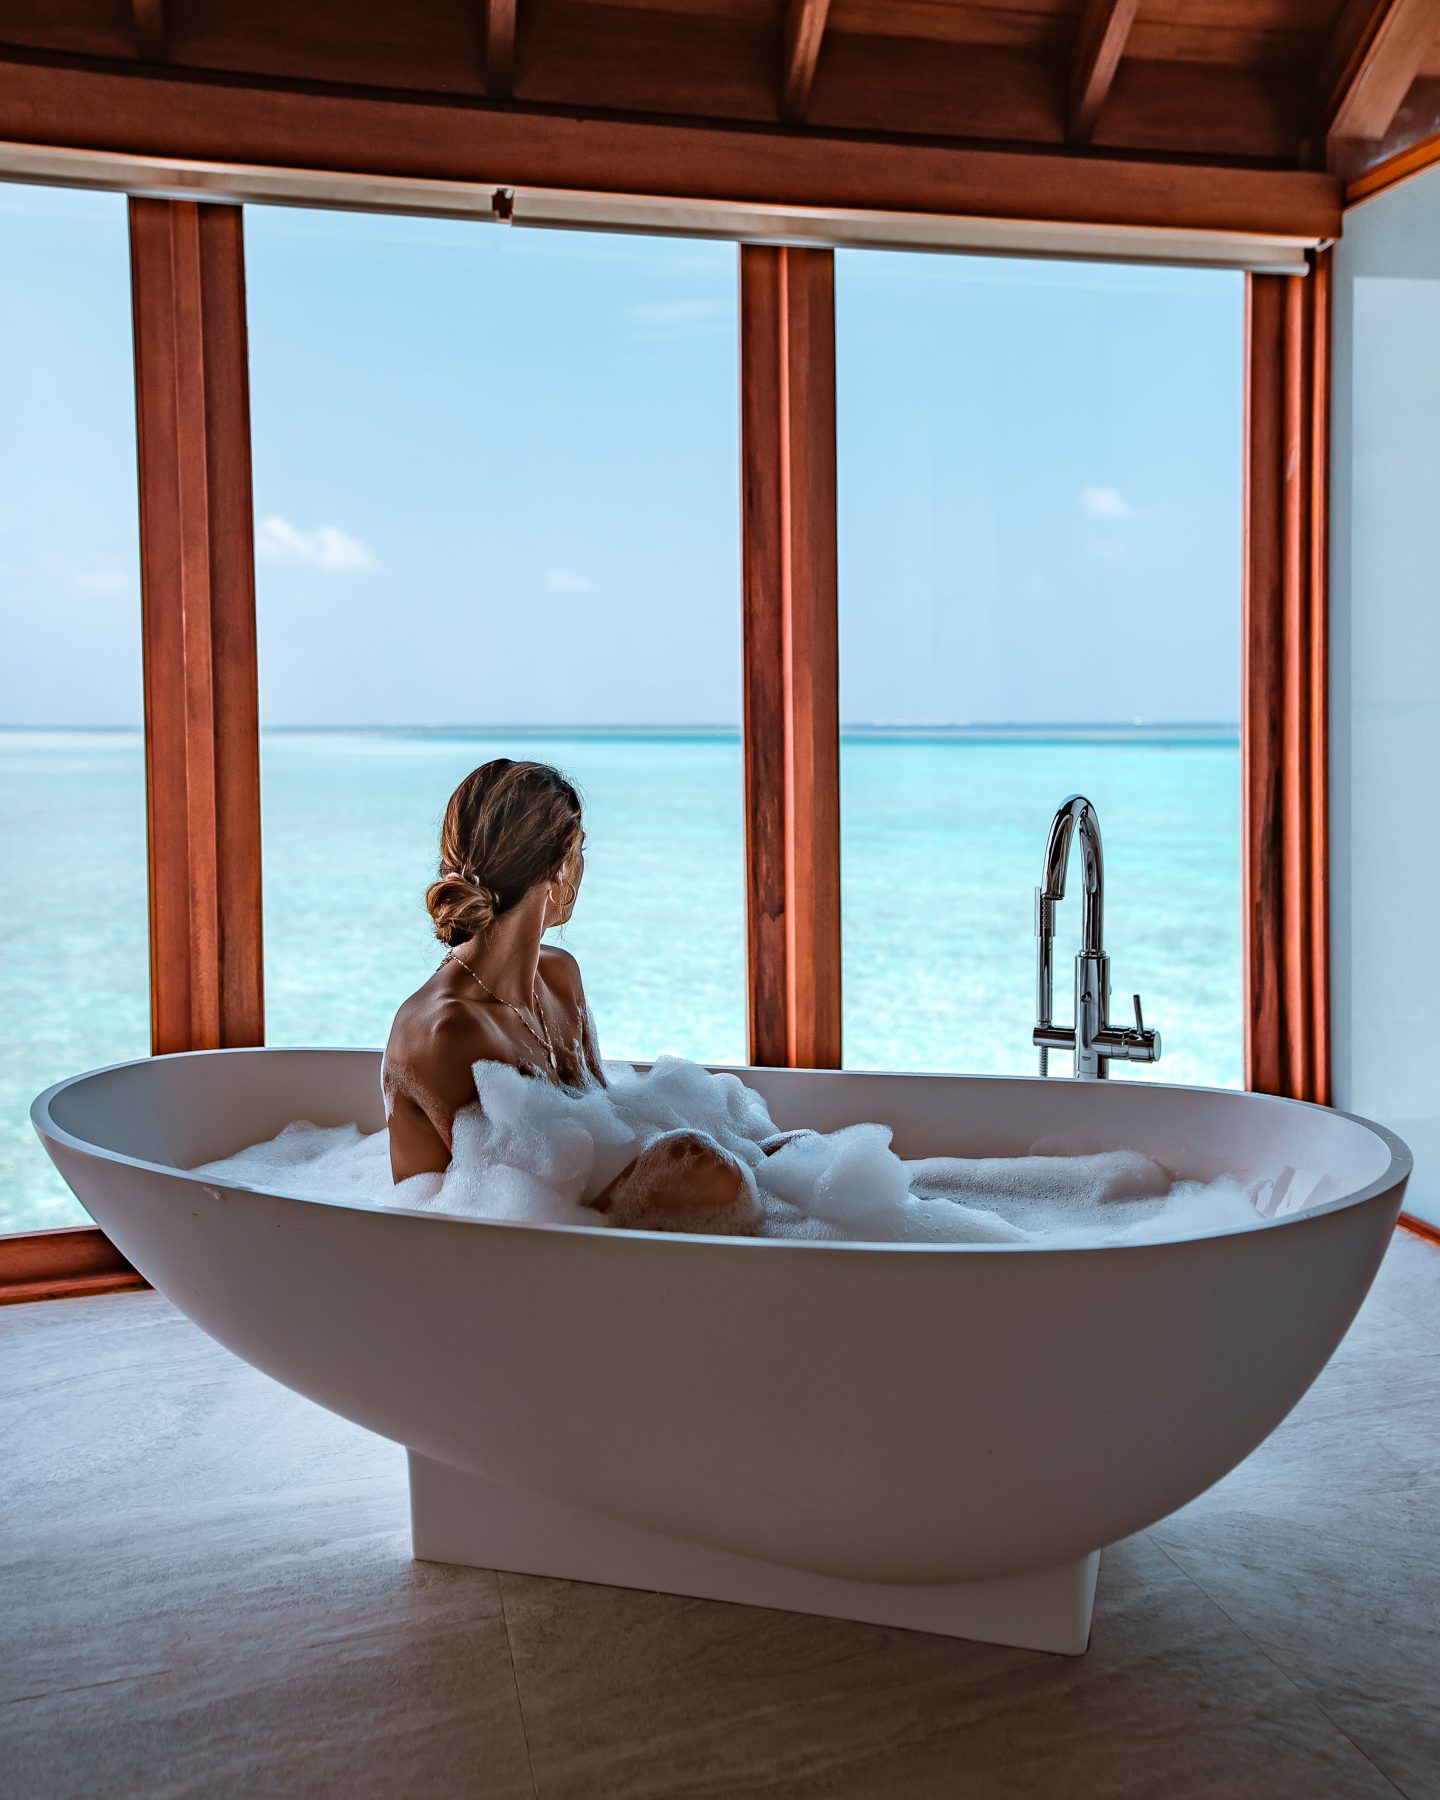 Woman in bathtub at Anantara Dhigu in the Maldives with an amazing view